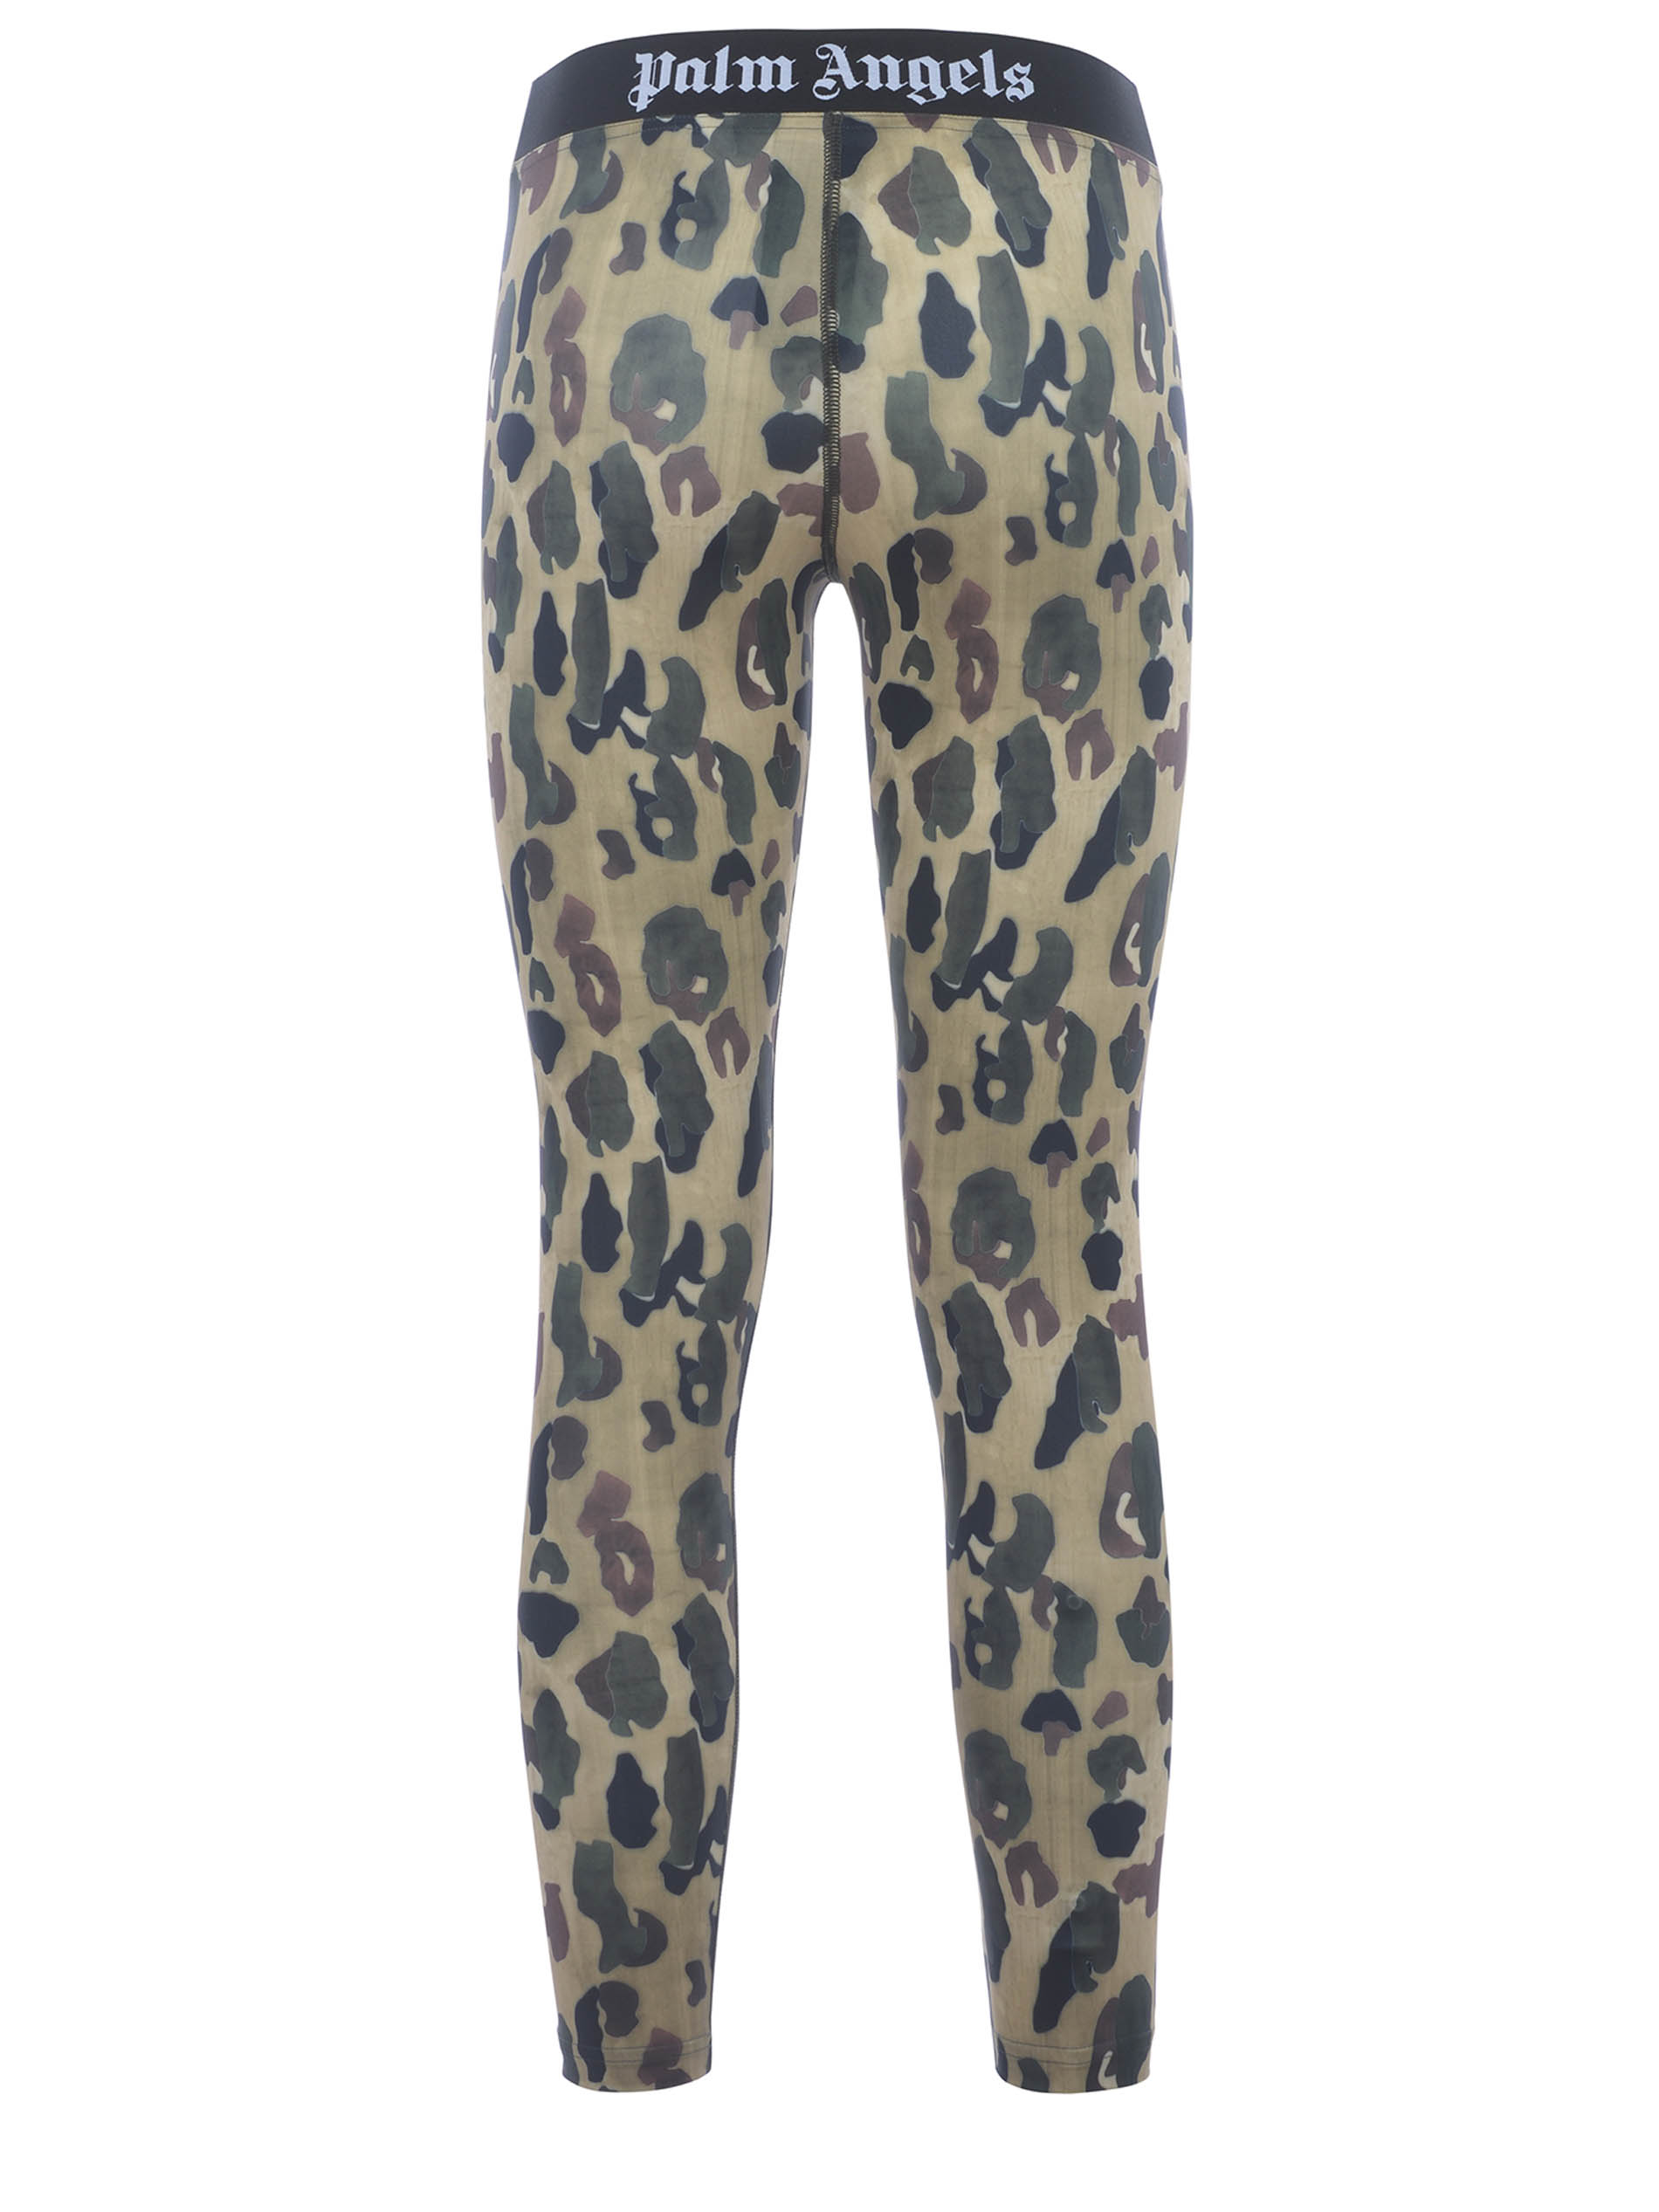 Palm Angels Military Camo leggings in stretch nylon PALM ANGELS | -1927212704 | PWCD006S21FAB0015601